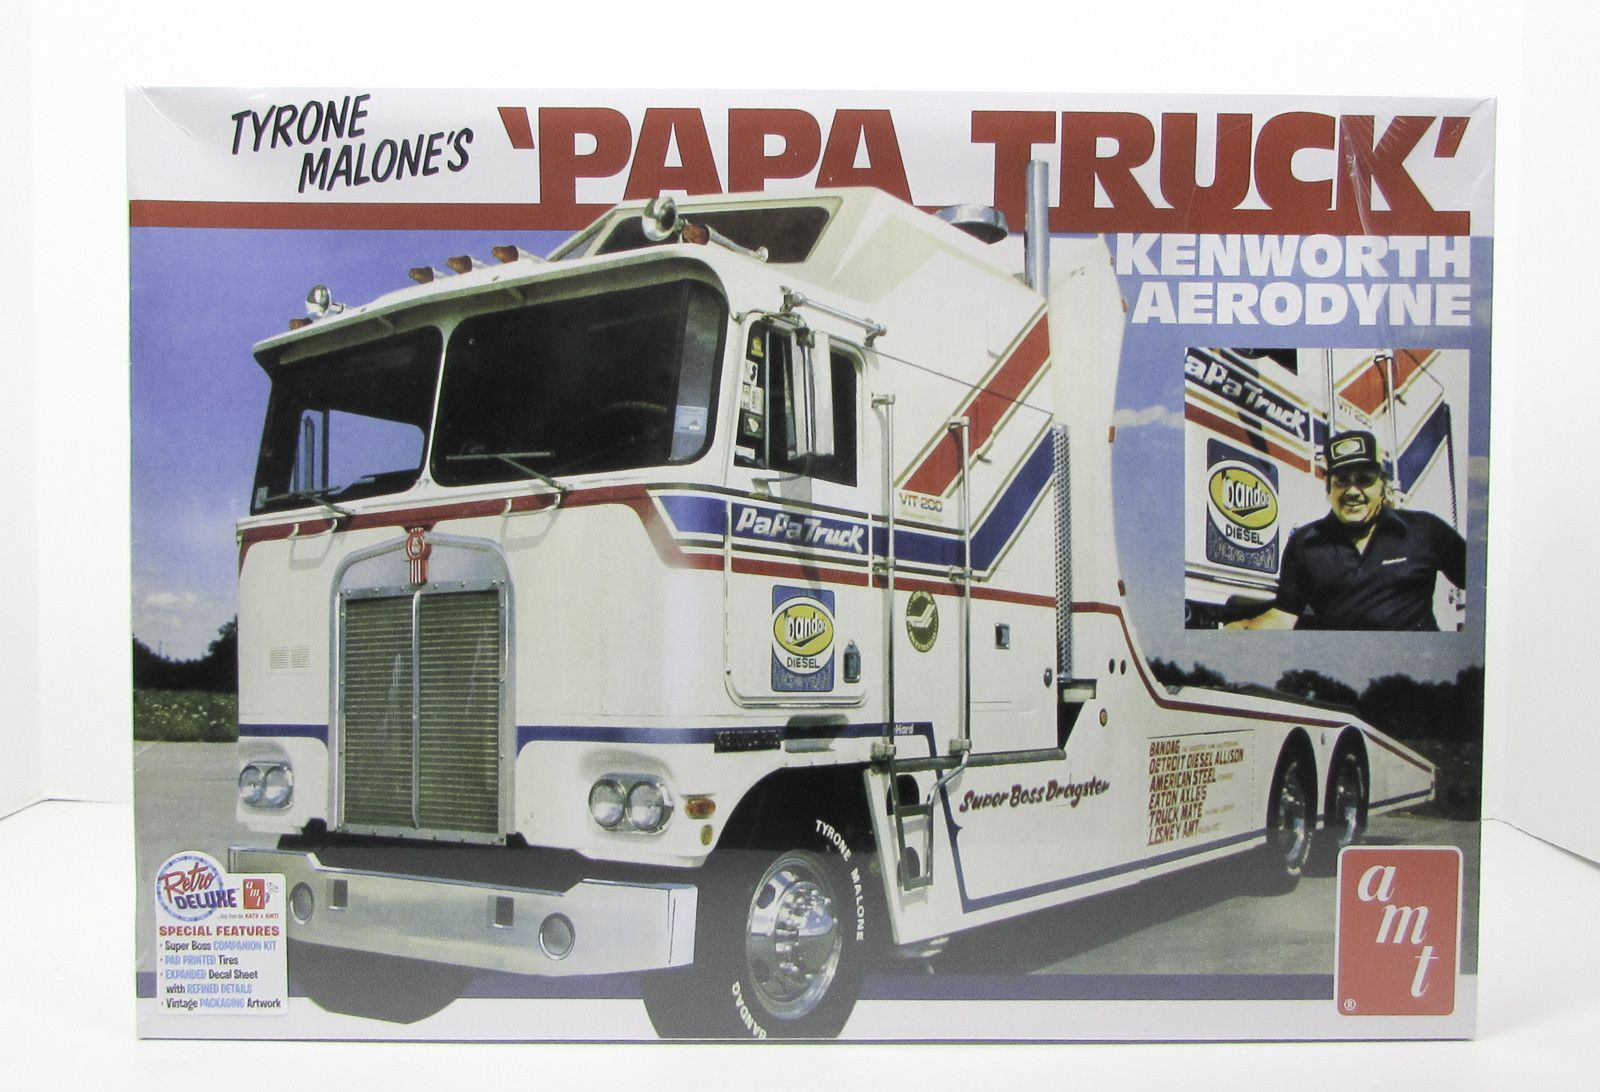 Tyrone Malone's Papa Truck AMT 932 1/25 New Truck Model Kit